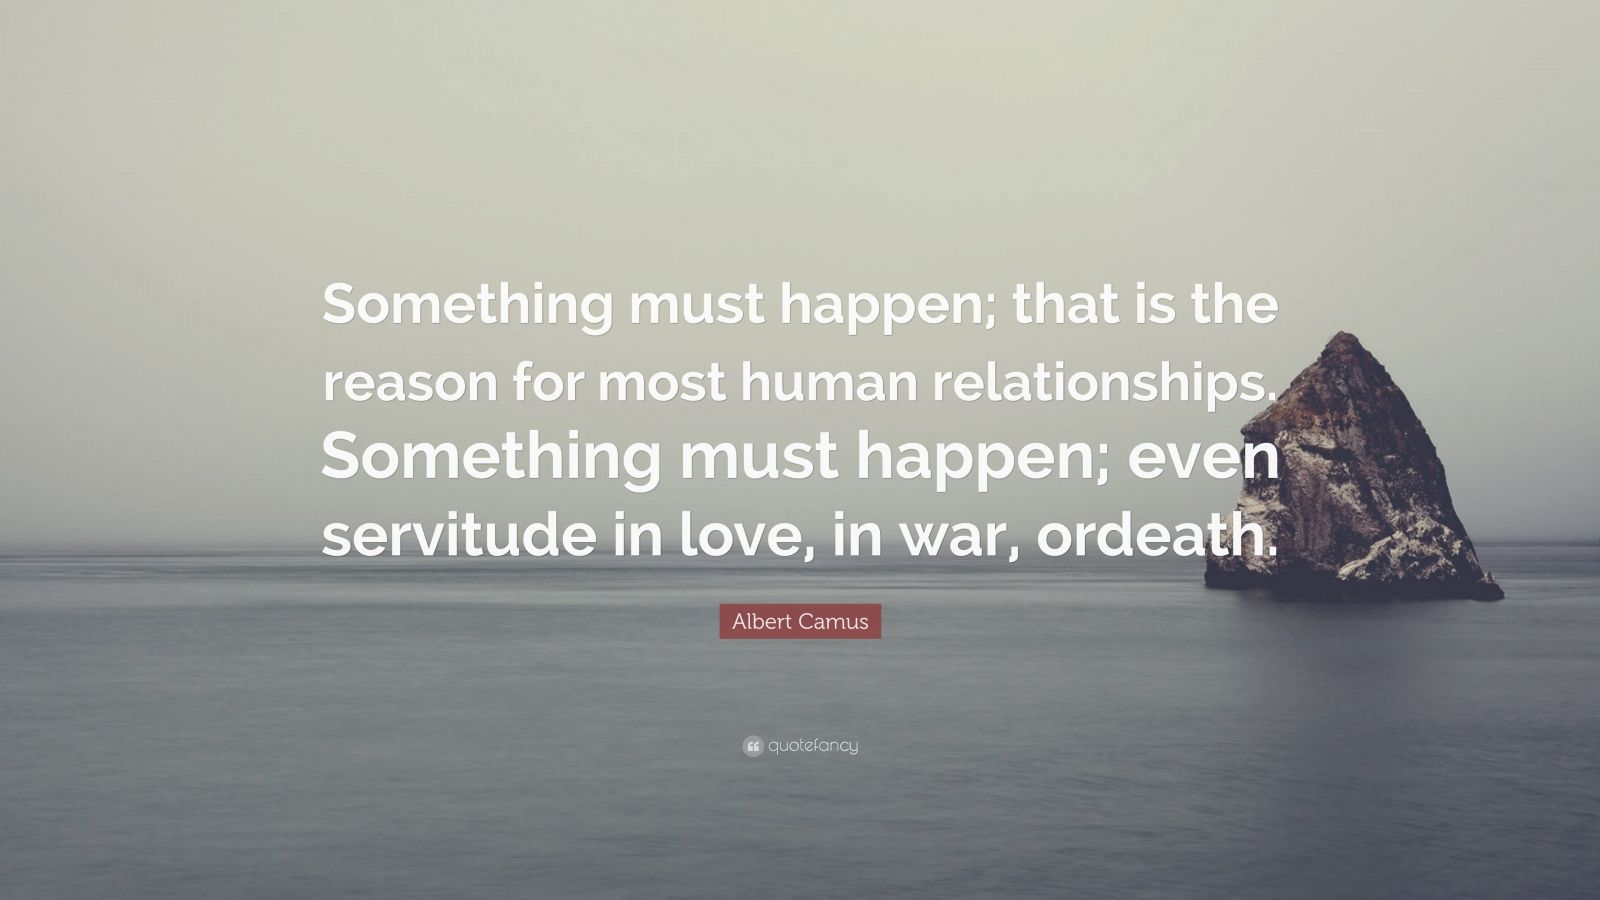 """Albert Camus Quote: """"Something must happen; that is the reason for most human relationships. Something must happen; even servitude in love, in war, ordeath."""""""